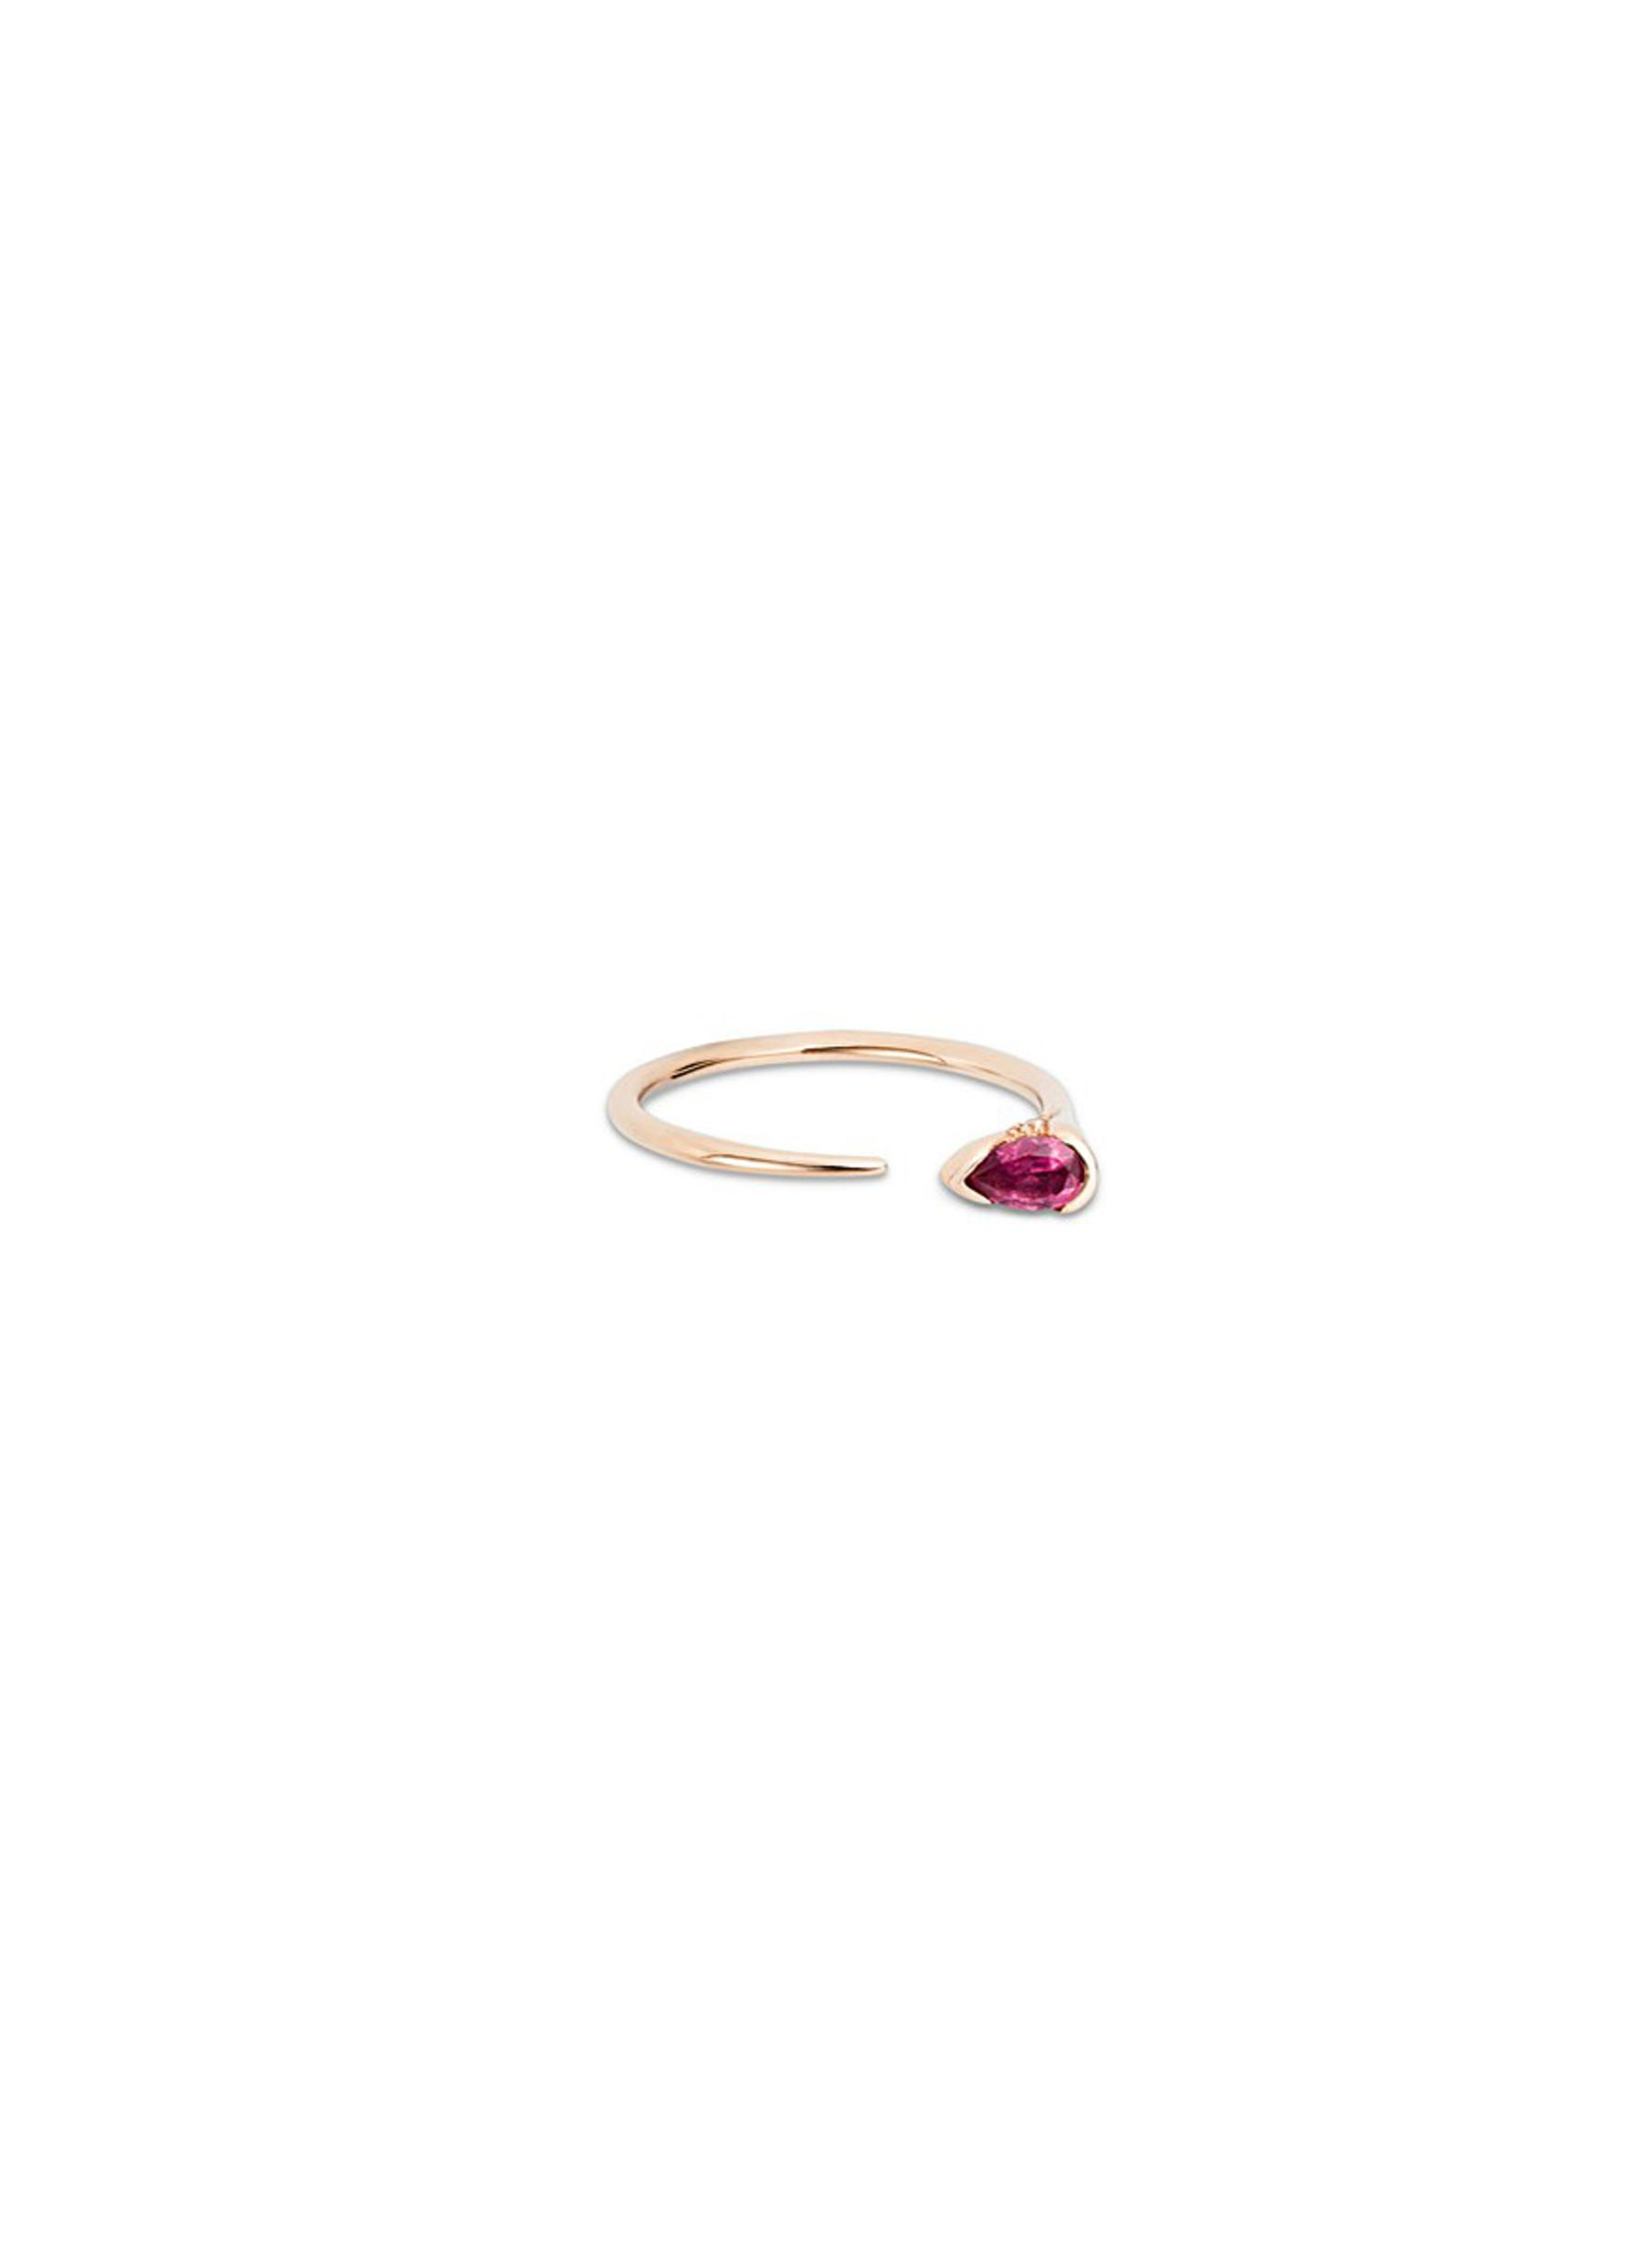 Sprout diamond rubellite 18k rose gold ring by Fernando Jorge